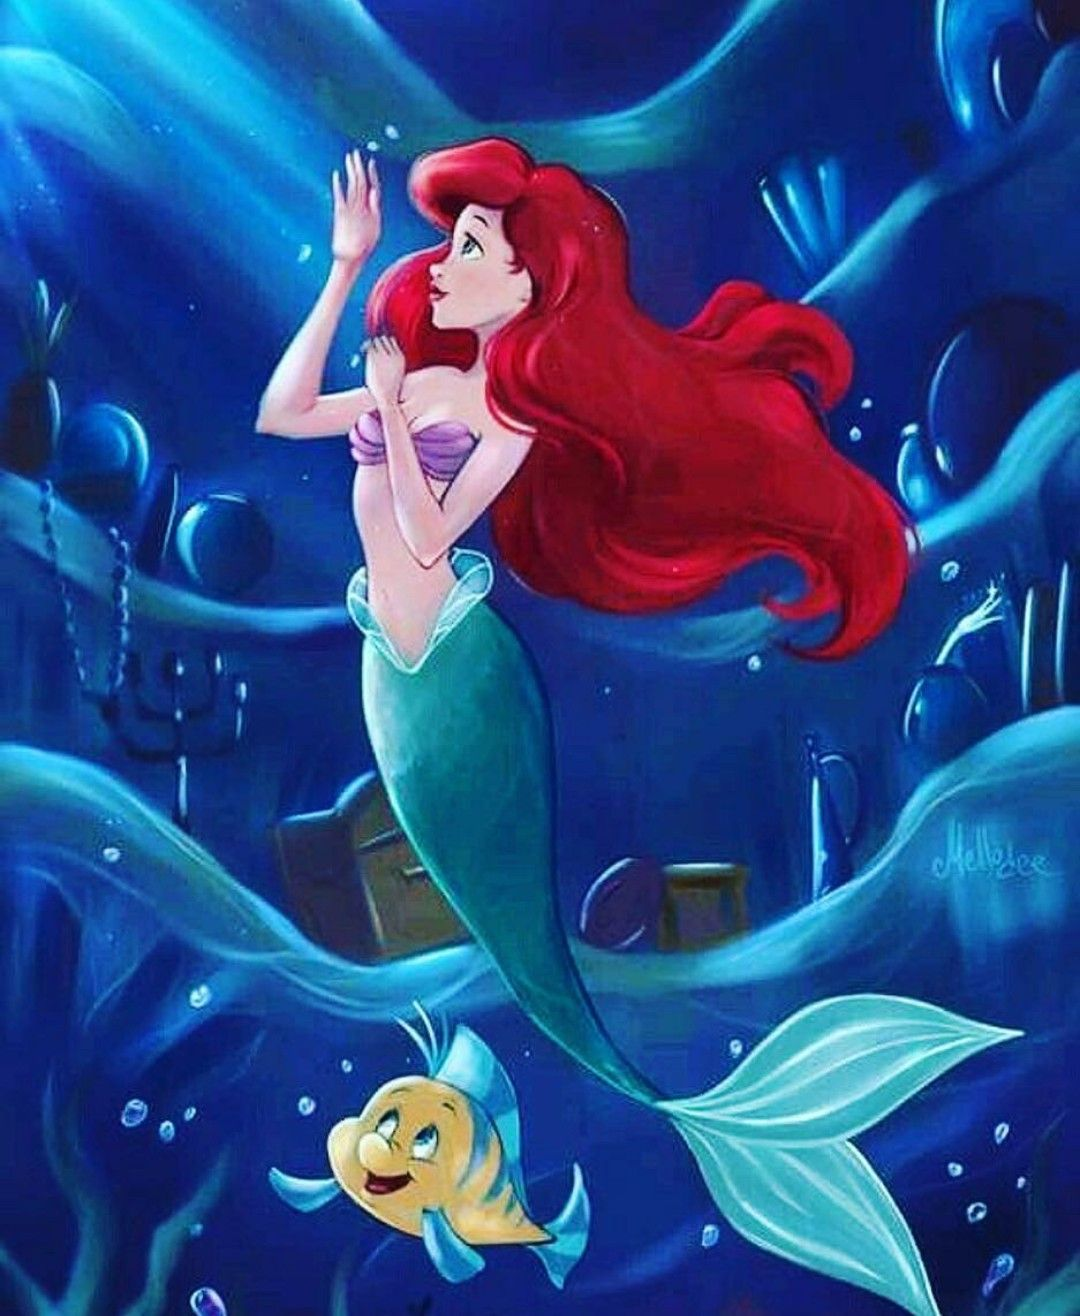 pin de giselly mass en little mermaid pinterest sirena ariel y ariel la sirenita. Black Bedroom Furniture Sets. Home Design Ideas